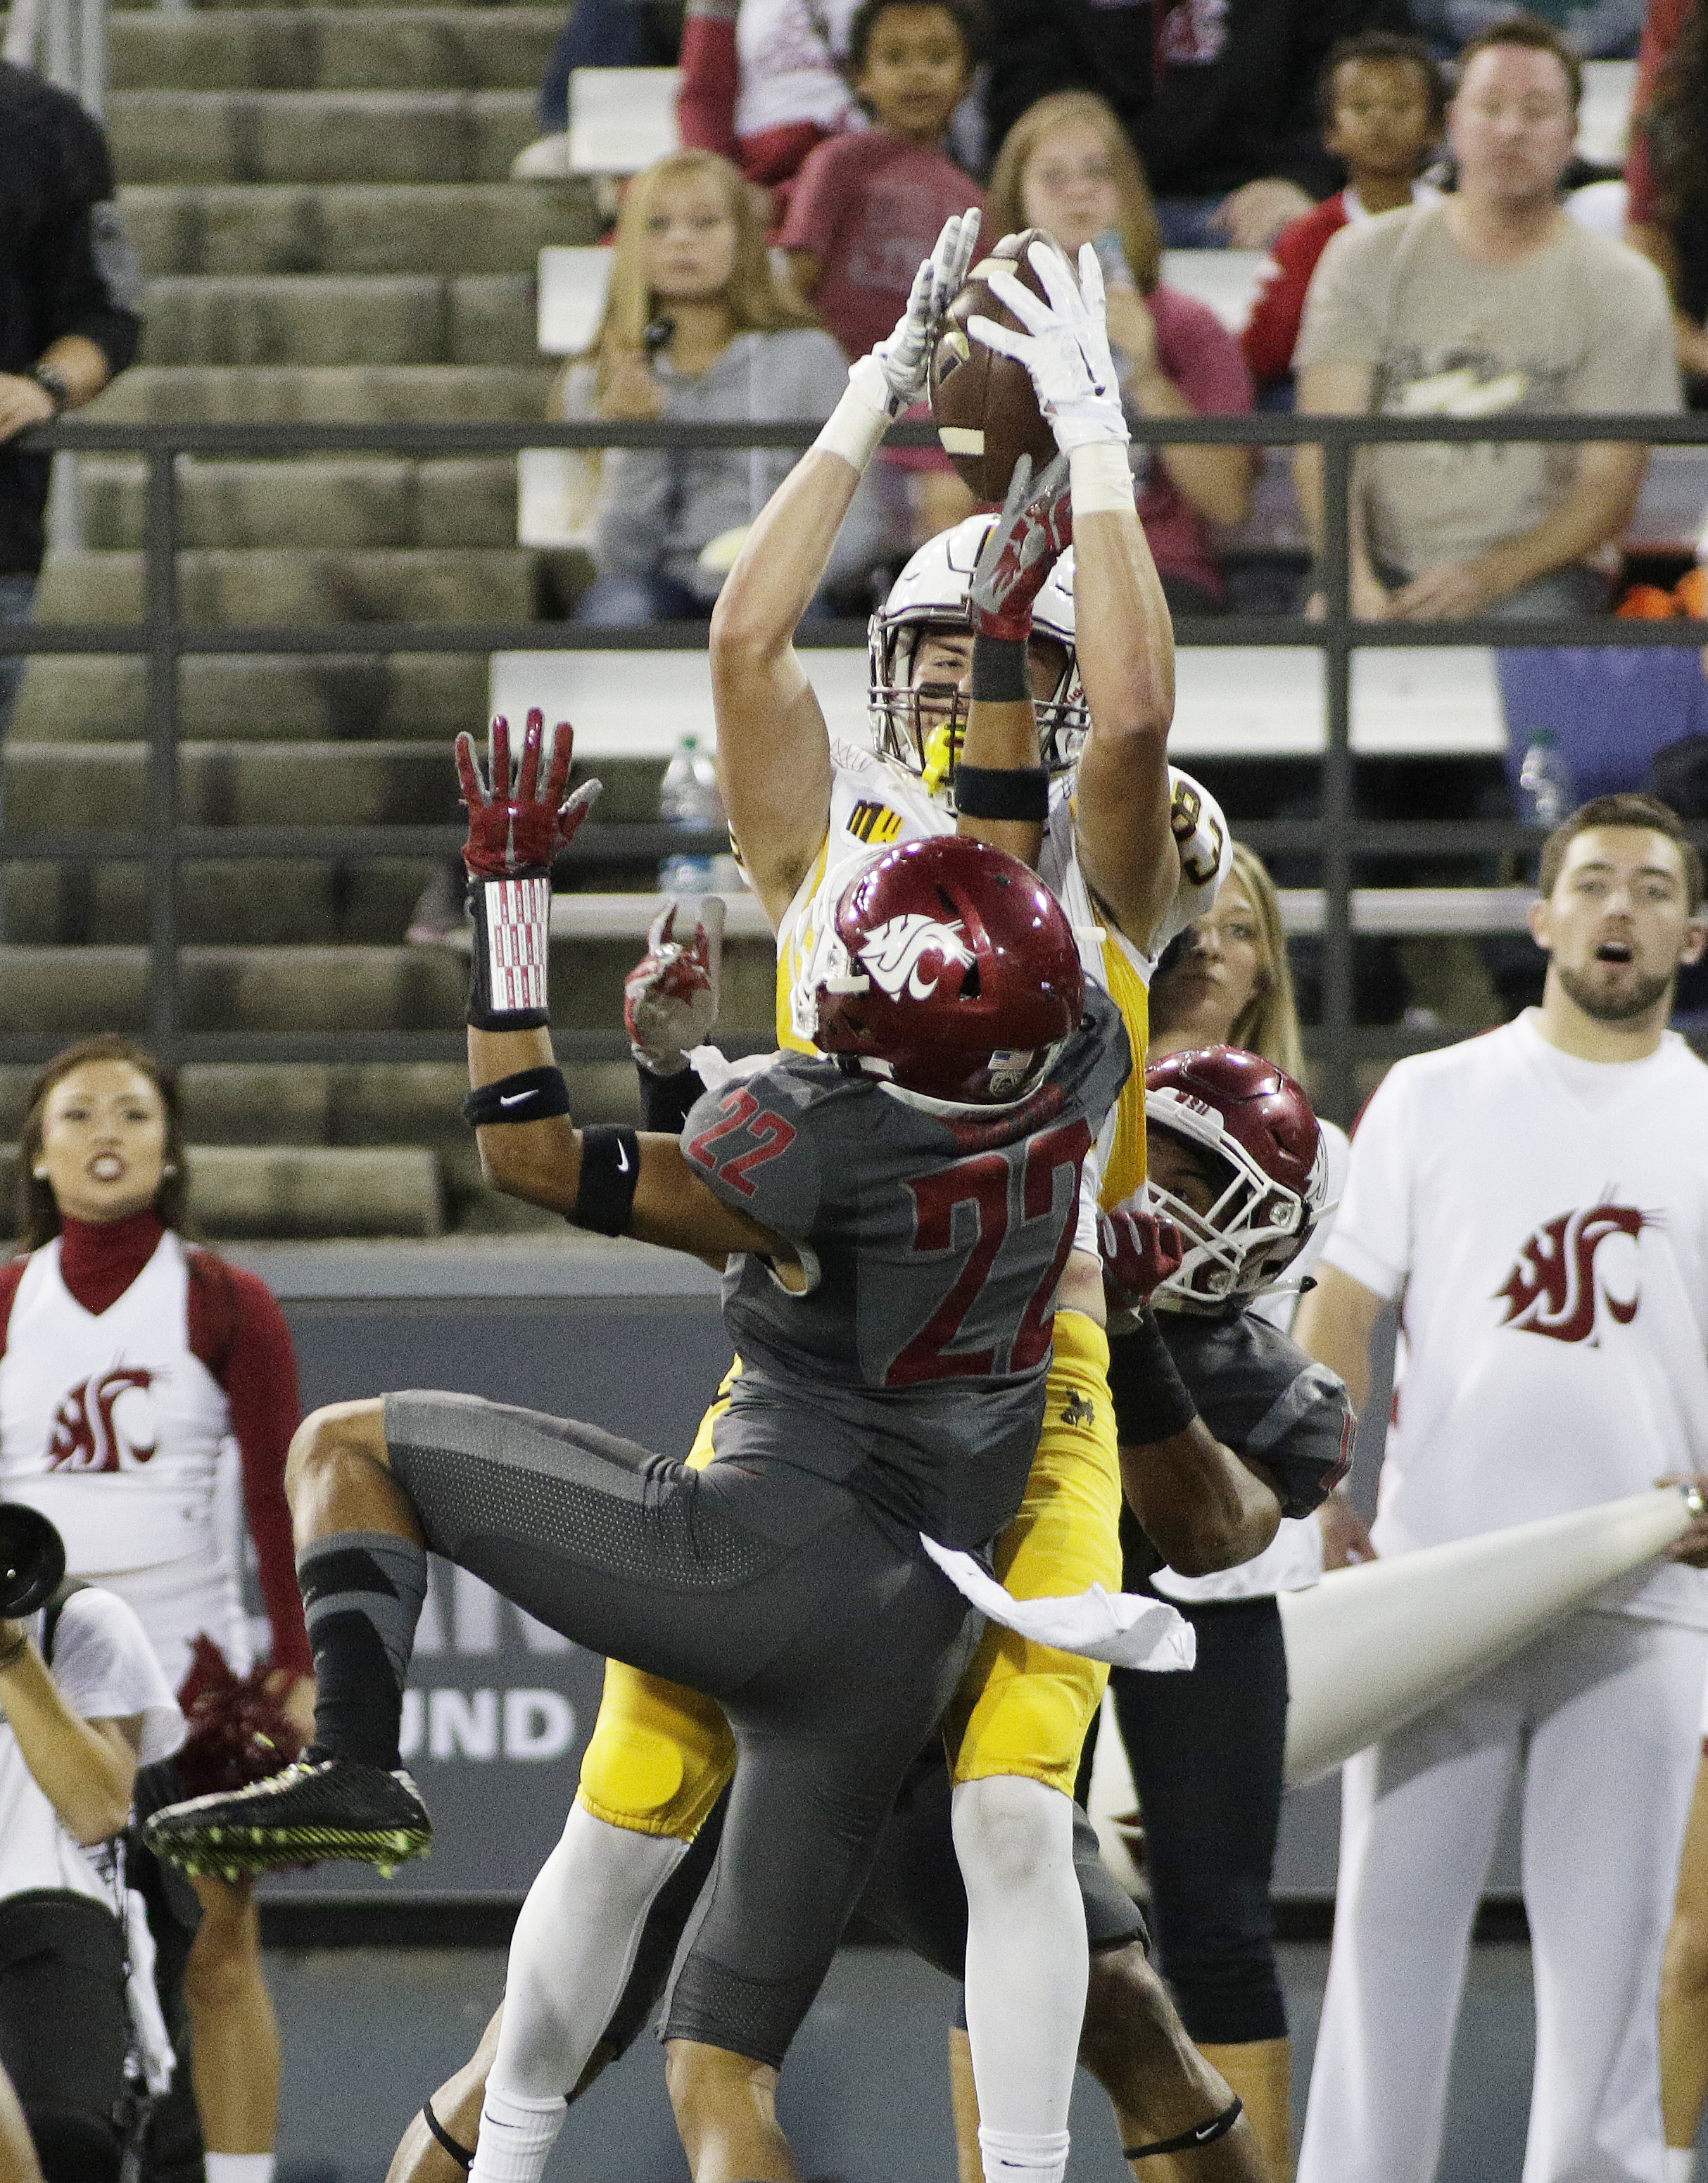 Wyoming wide receiver Jake Maulhardt (83) makes a catch against Washington State cornerback Darrien Molton (22) and Shalom Luani during the first half of an NCAA college football game, Saturday, Sept. 19, 2015, in Pullman, Wash. (AP Photo/Young Kwak)